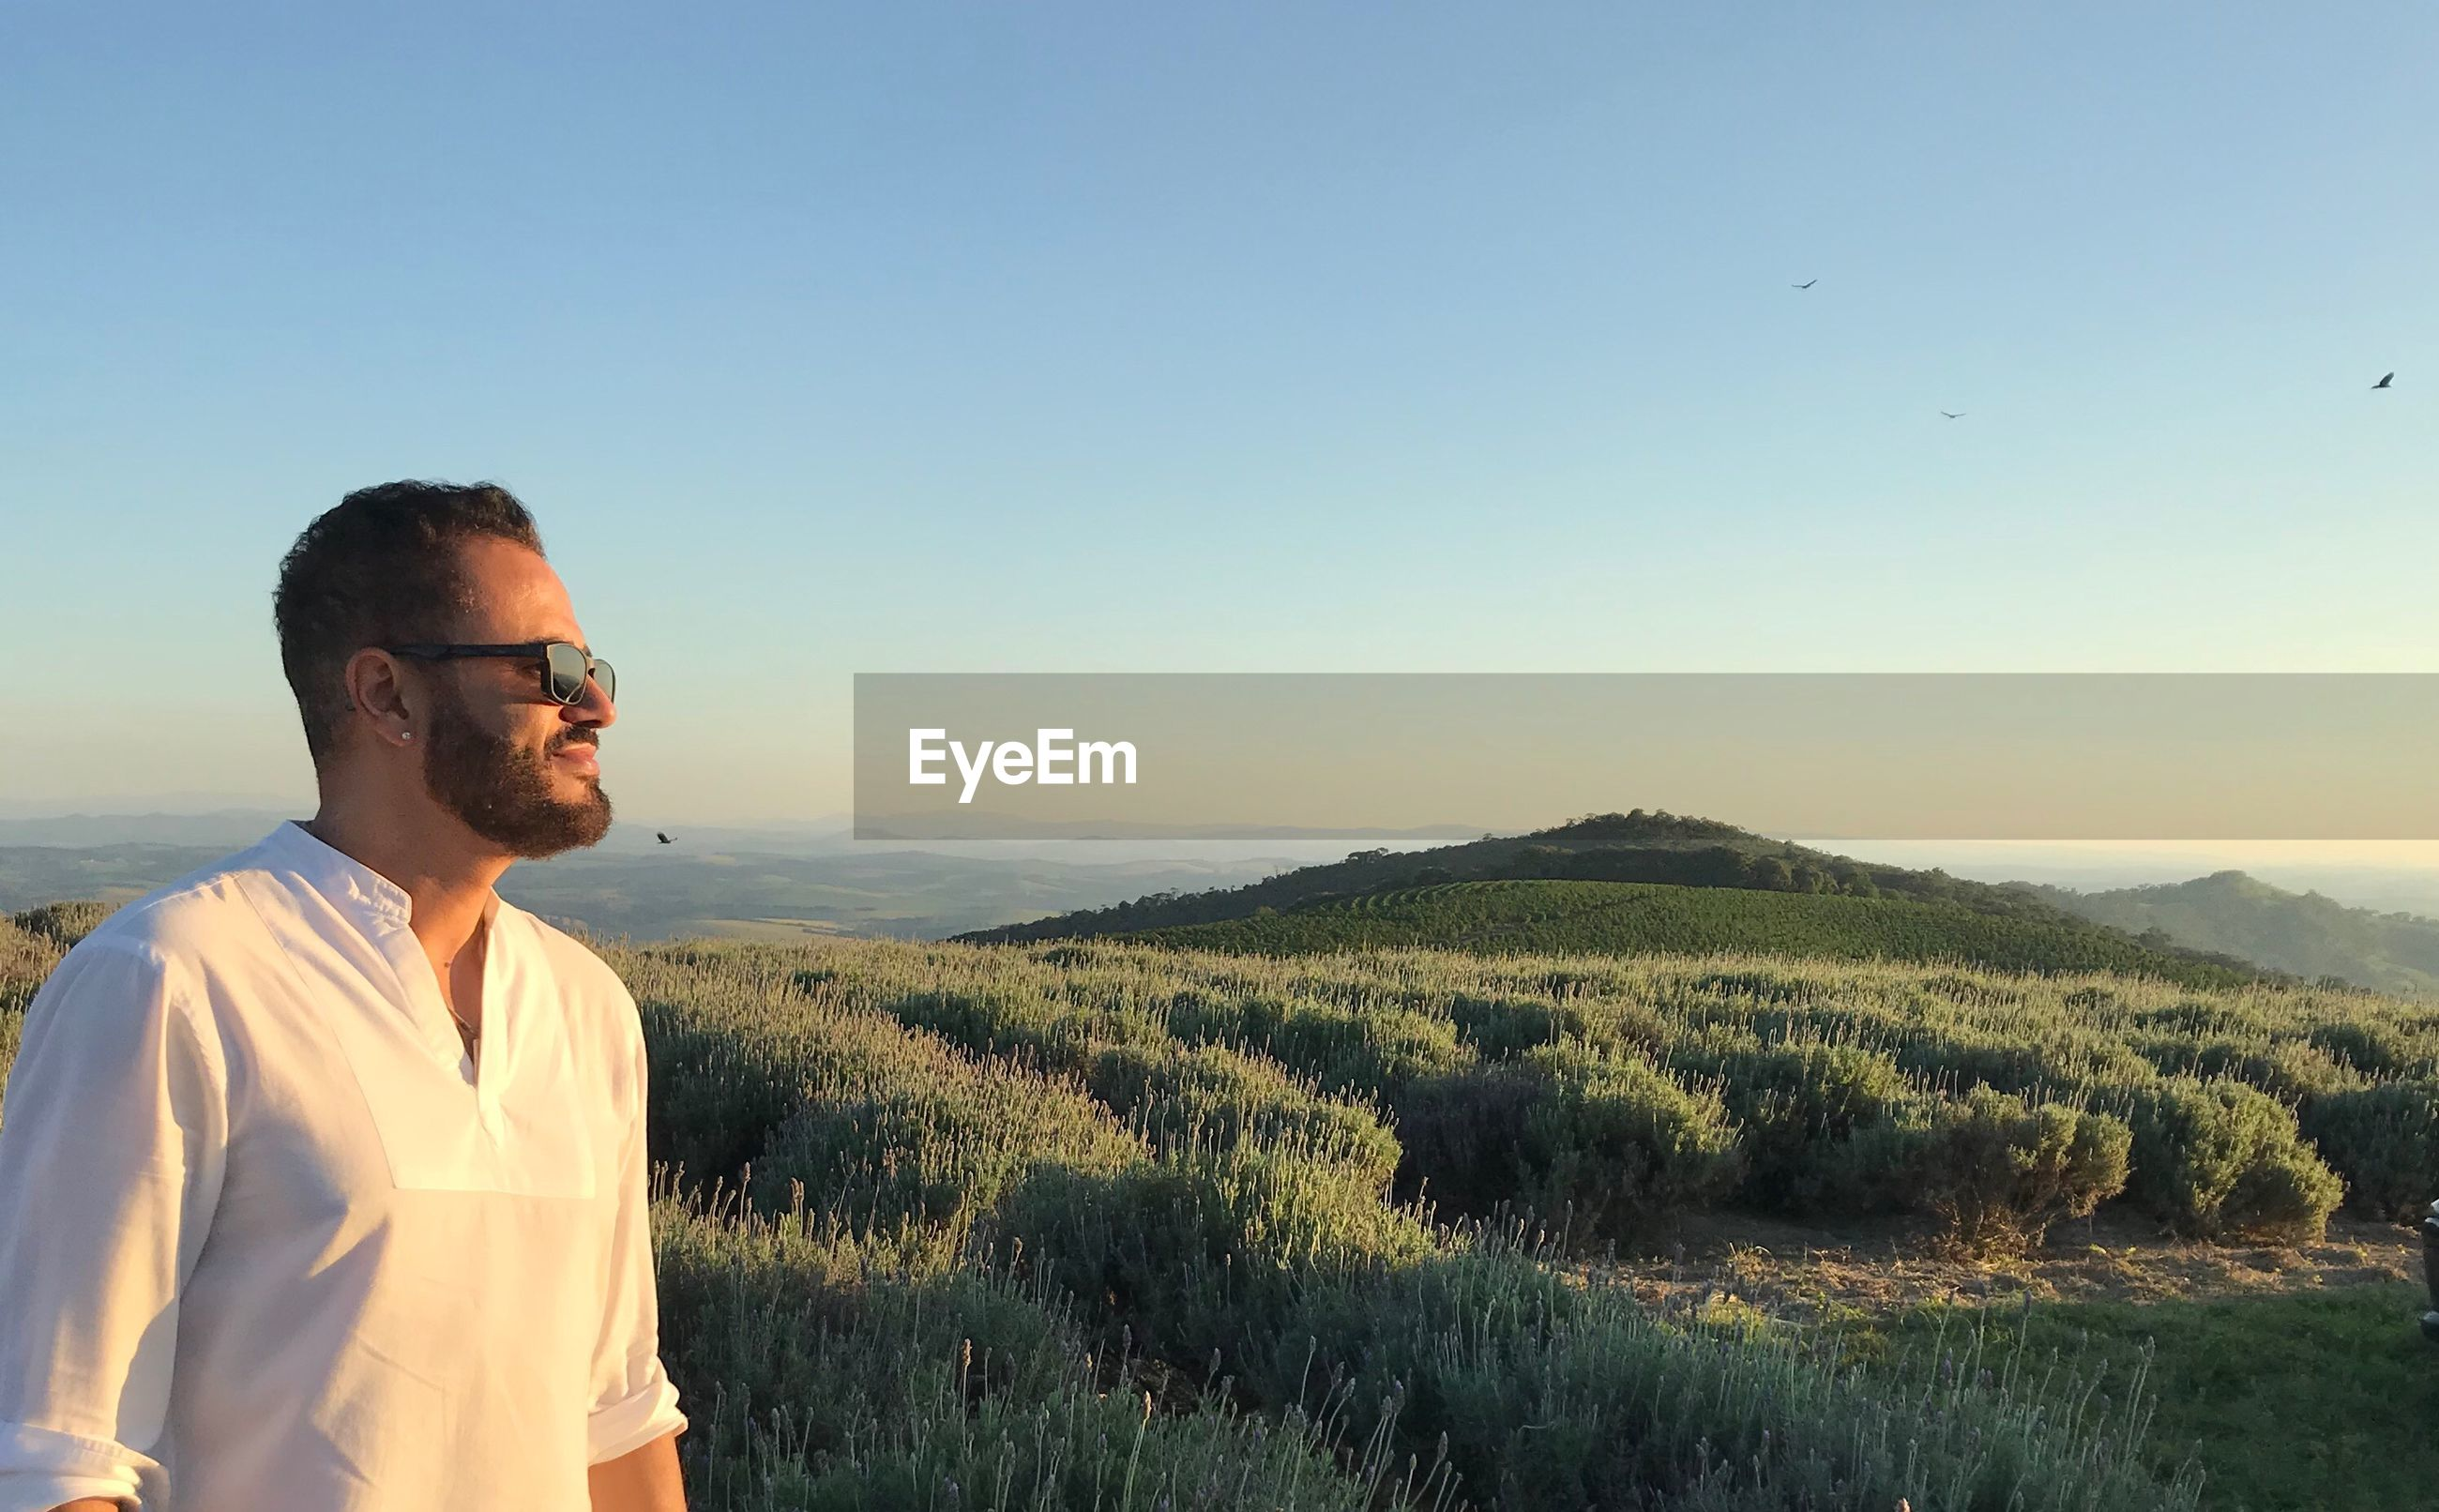 Man wearing sunglasses standing on grassy mountain against clear sky during sunset